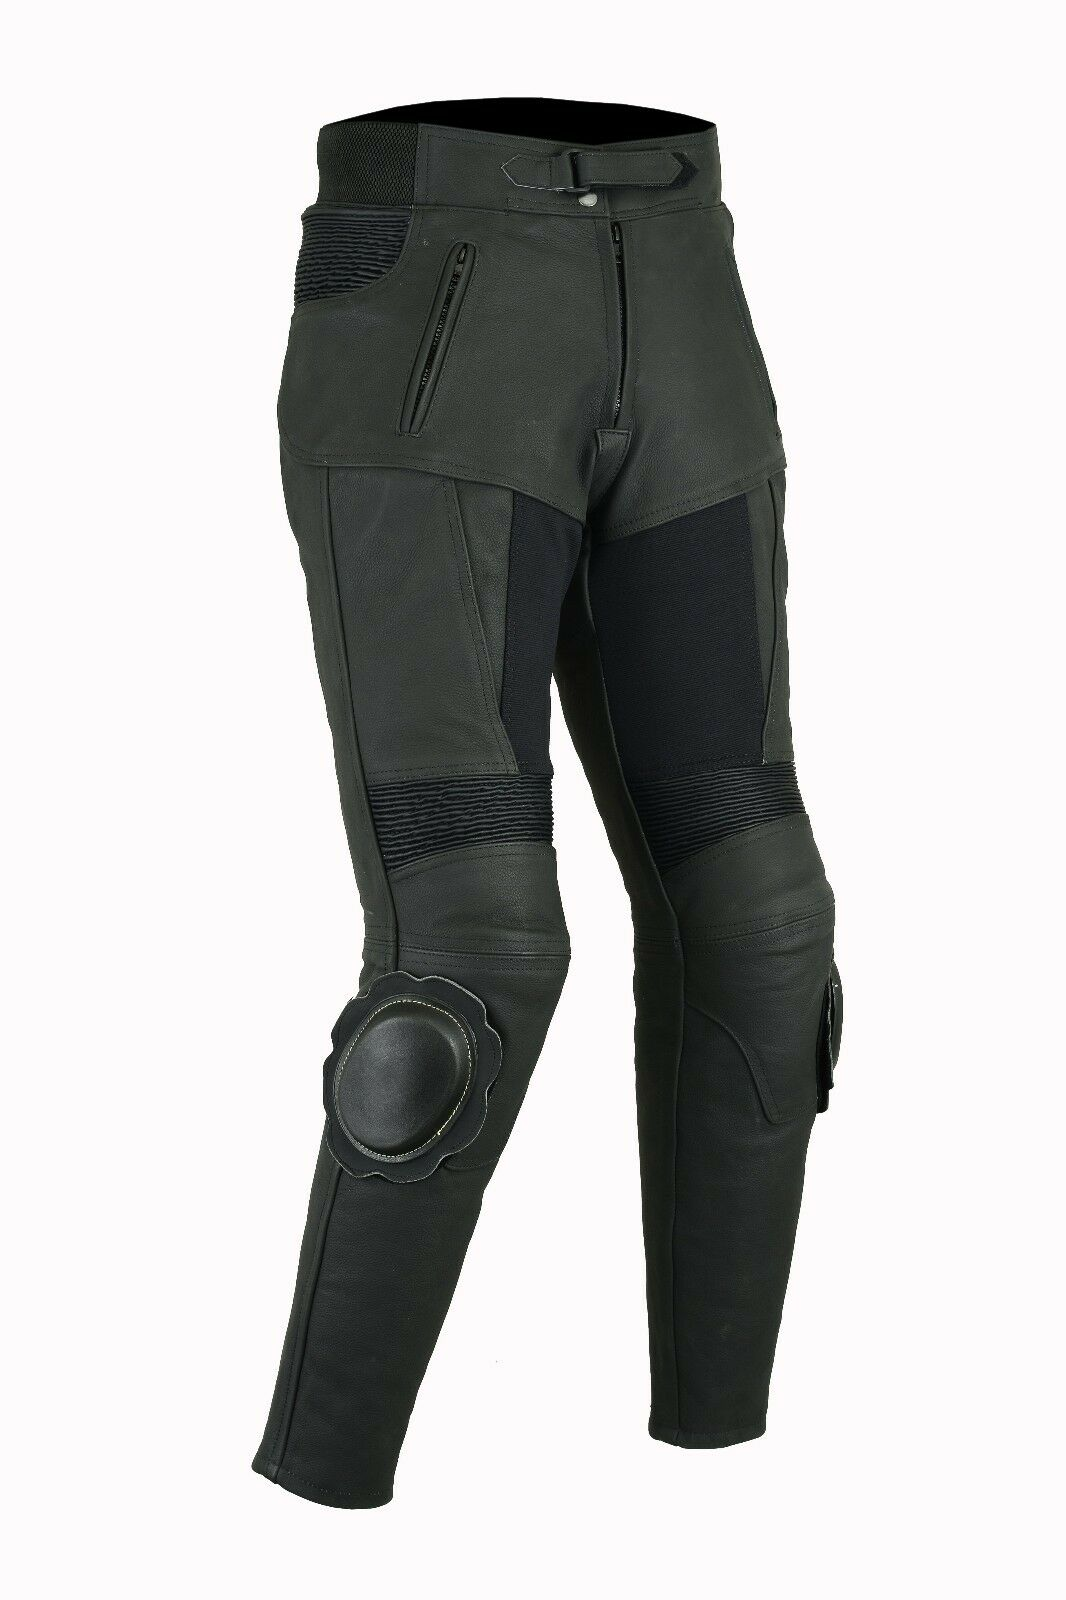 nue femmes pantalon de moto en cuir touring vachette combinaison eur 99 95 picclick fr. Black Bedroom Furniture Sets. Home Design Ideas